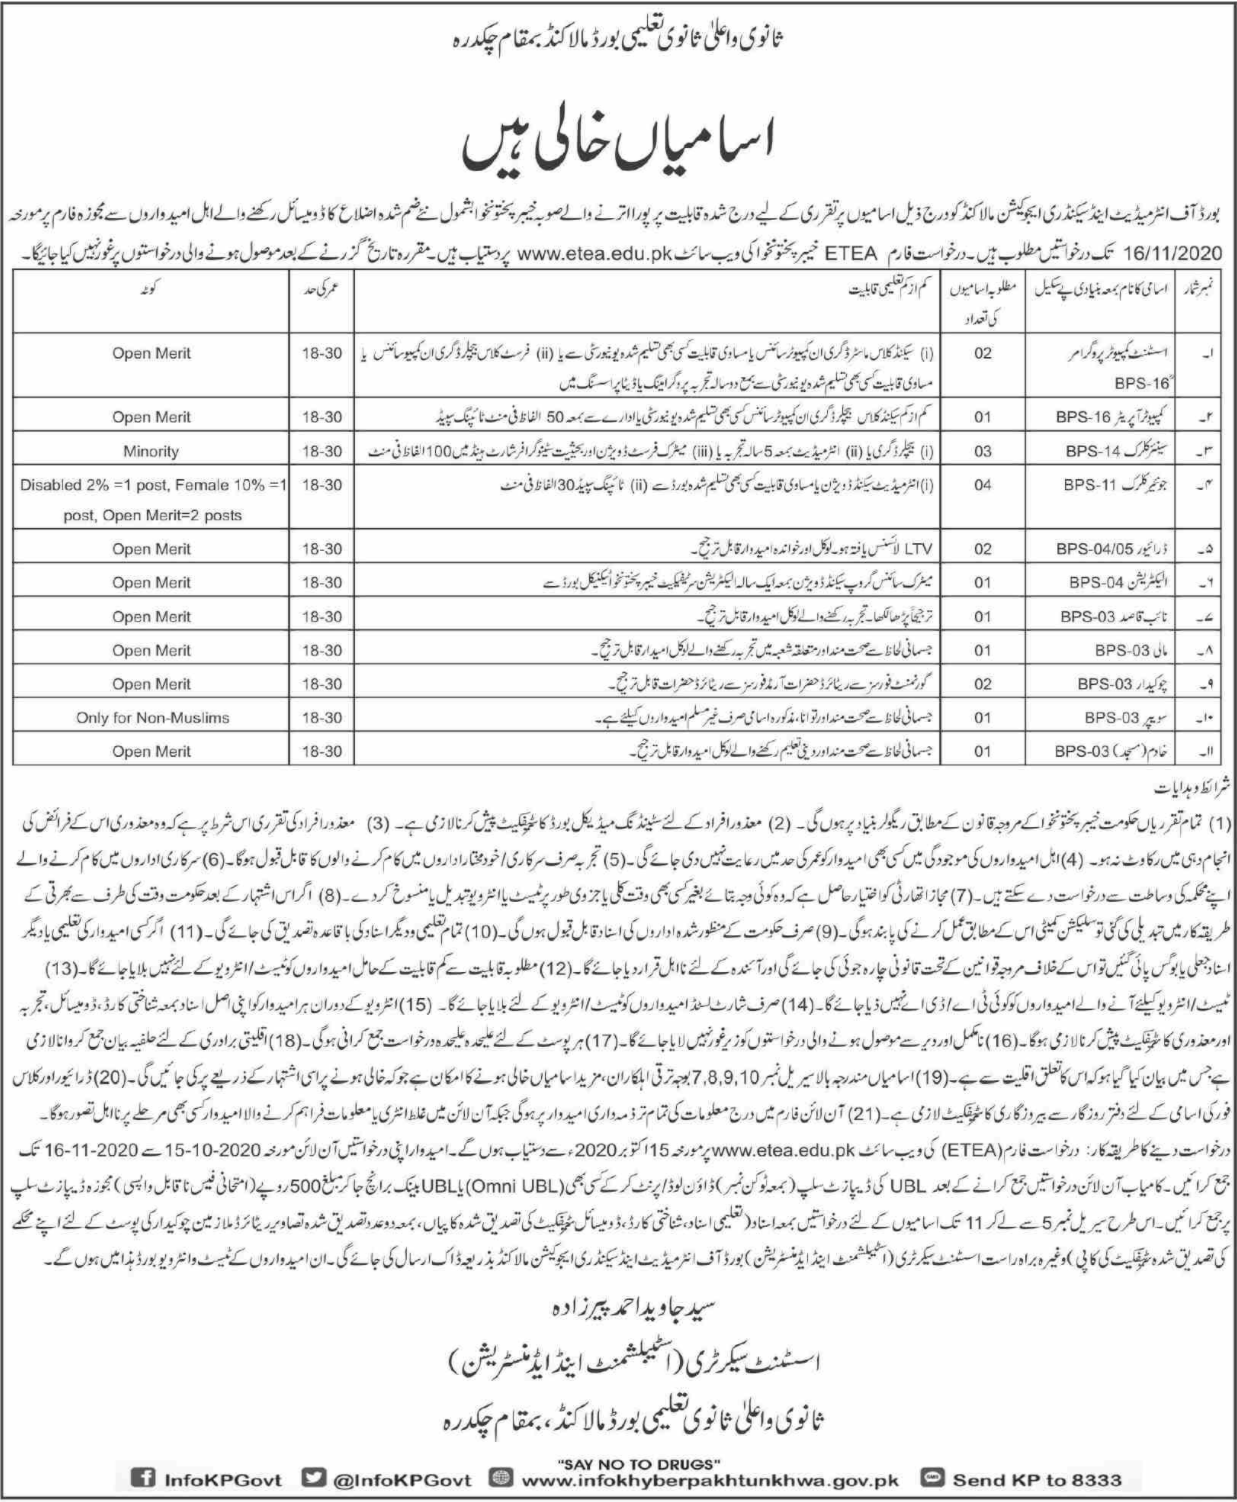 FSc Pass jobs For Senior Clerk in Board of Intermediate & Secondary Education in Malakand for KPK candidates -2020